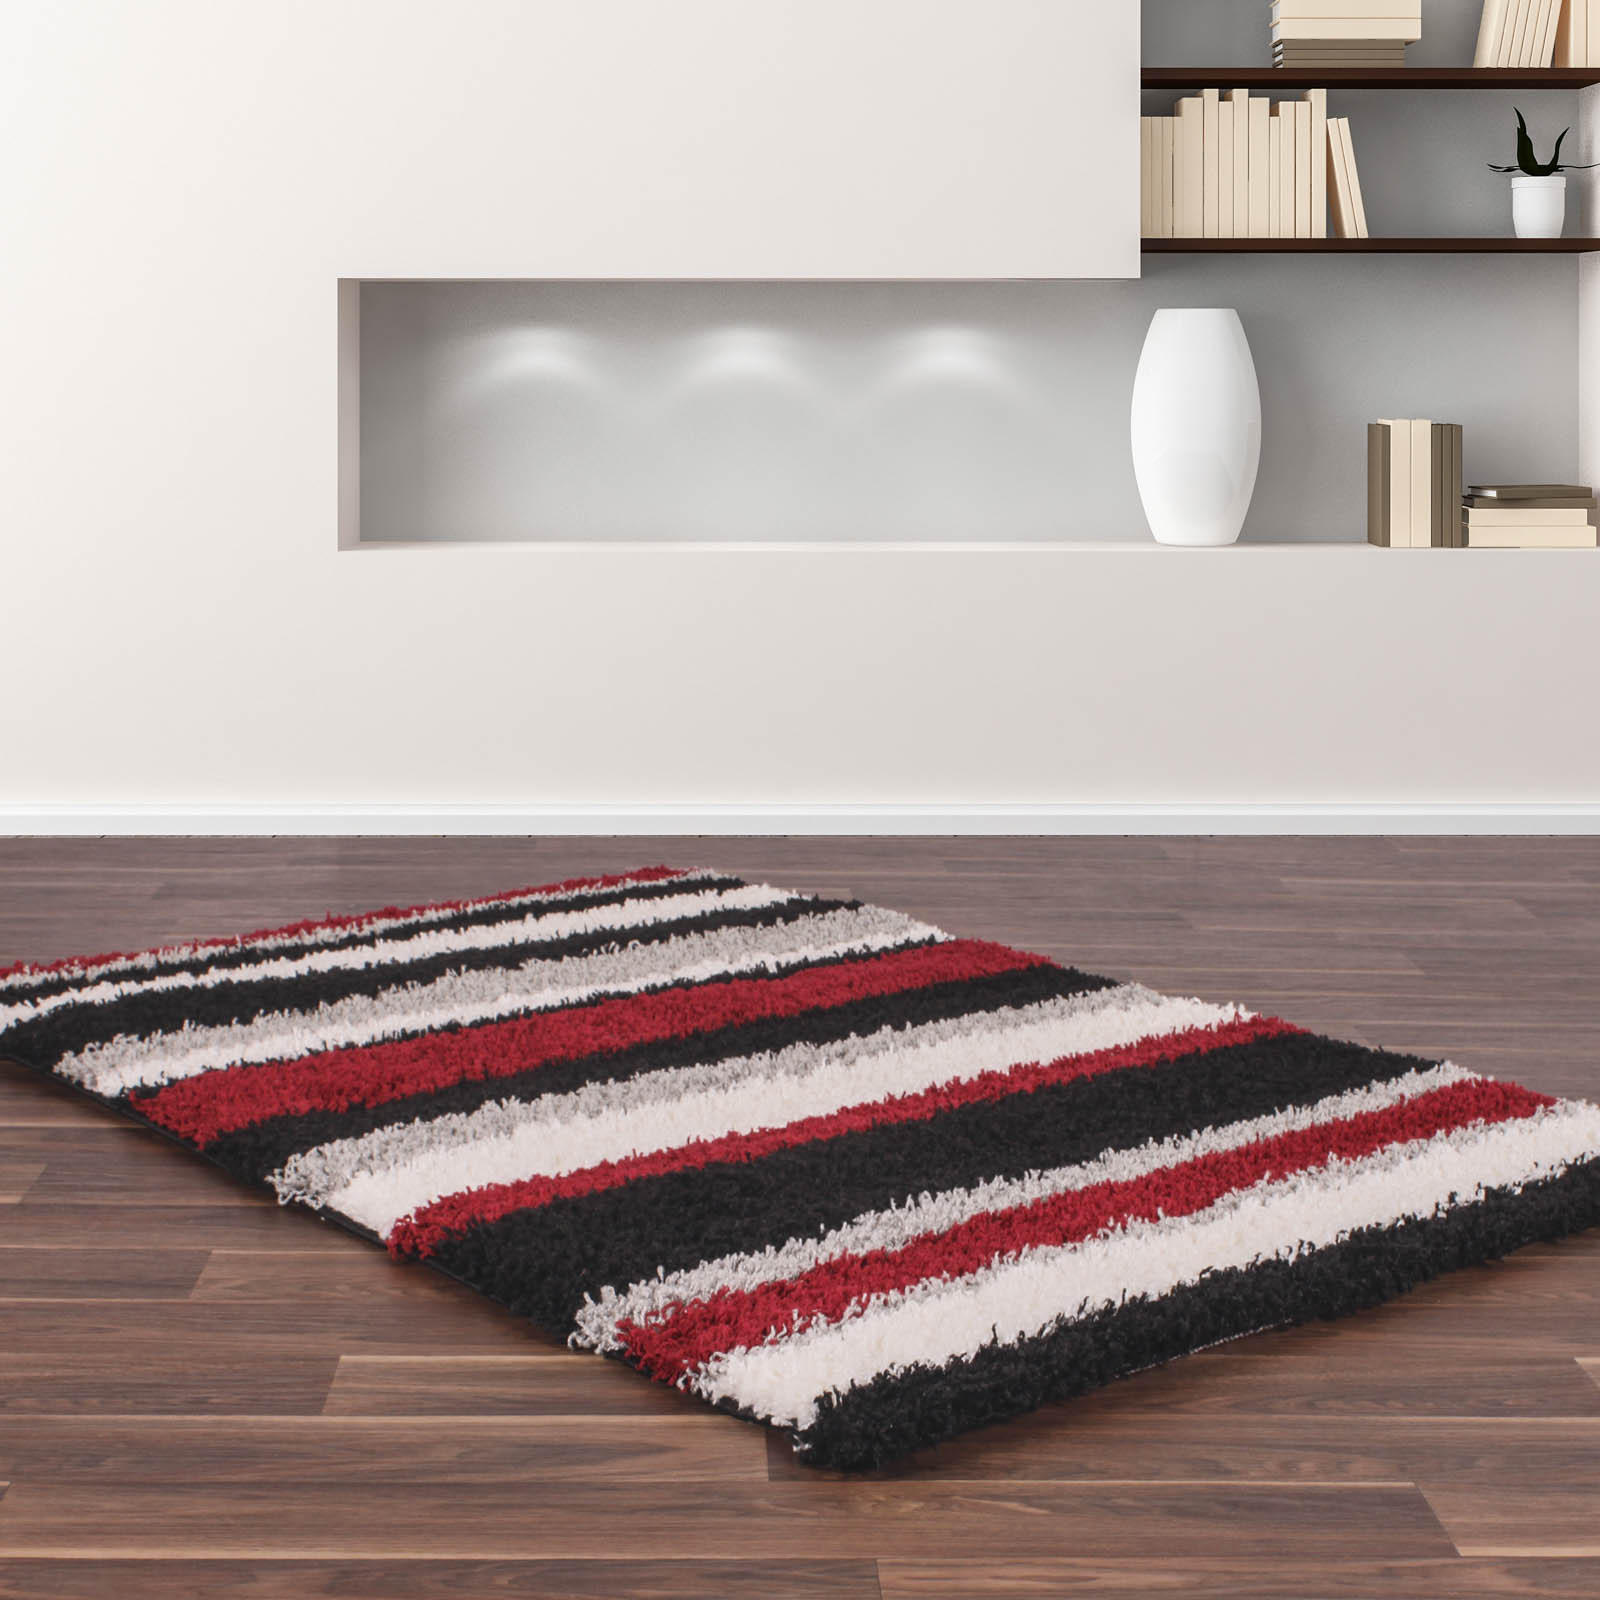 Sienna Stripe Shaggy Rugs in Black and Red